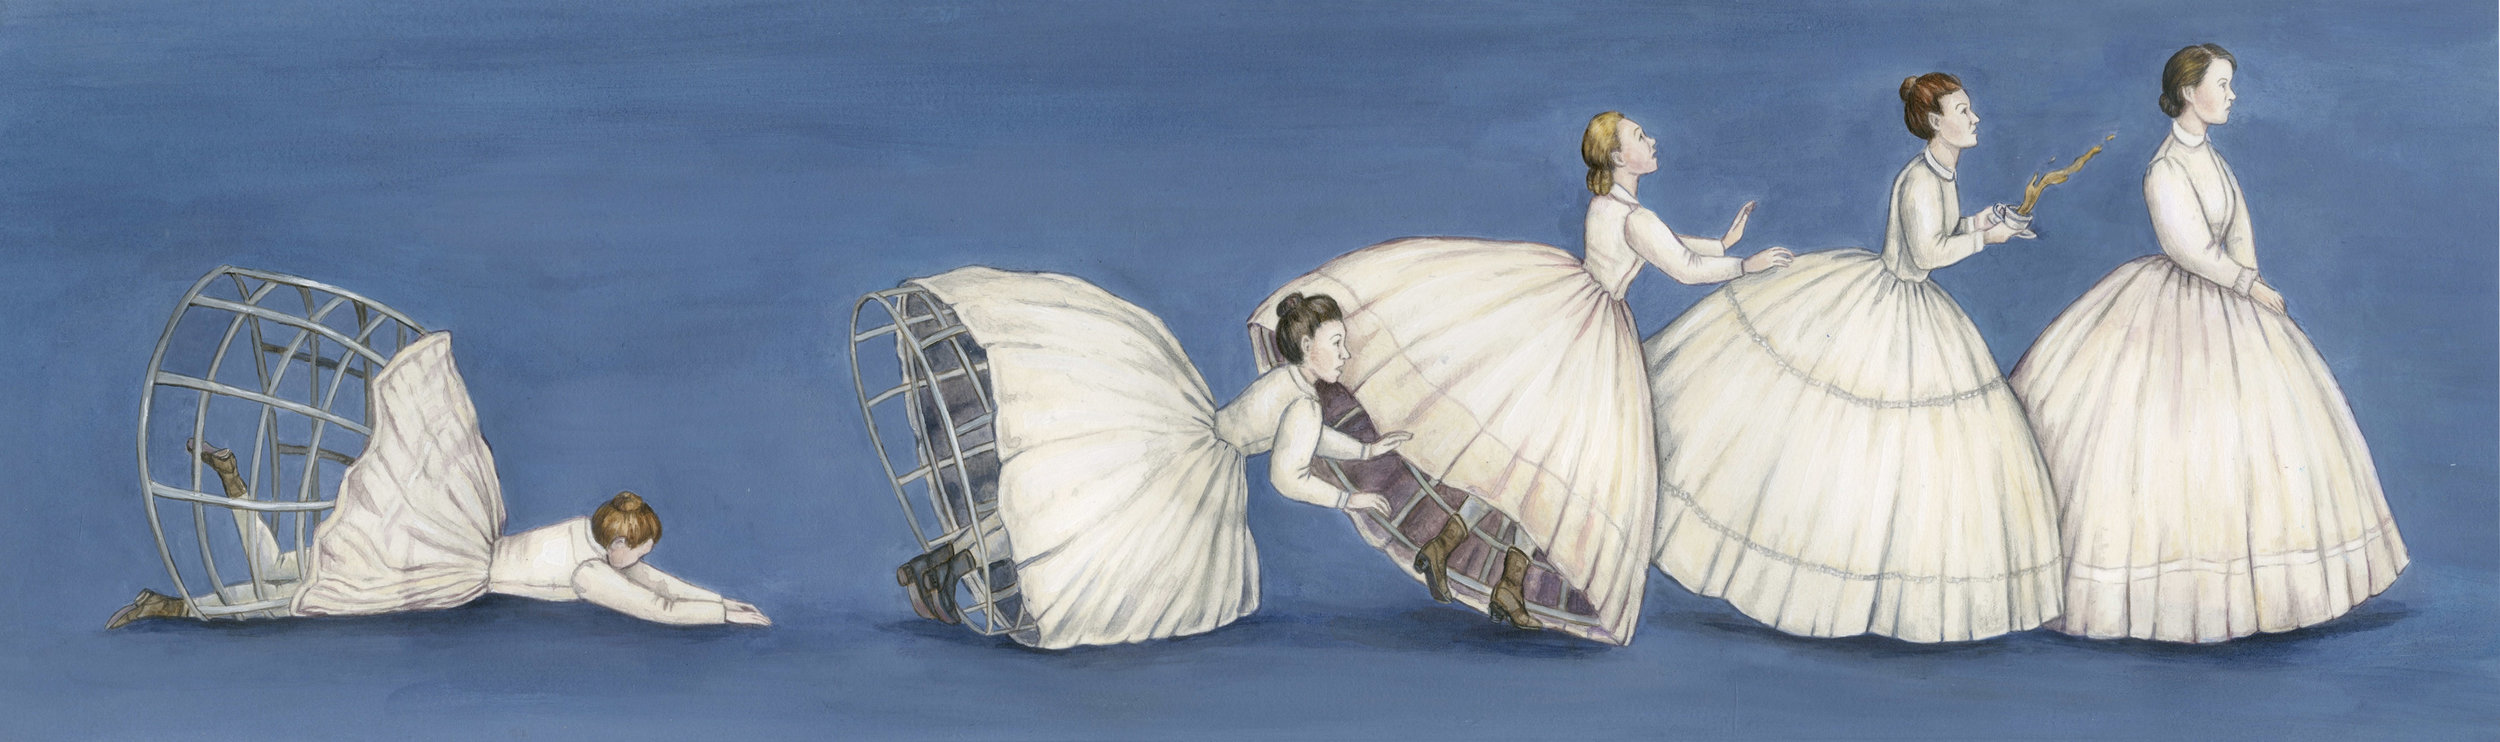 CRINOLINE   Crinolines were cages with hoops that were worn under a women's skirt to make a bell shape, often made of braided horsehair or steel. Wearing the hoops with excess fabric allowed the wearer to flaunt her wealth. The skirts were very dangerous to wear because they significantly limited mobility. The skirts could get caught between things, fabric and tulle could easily be set on fire, and be blown over by the wind.